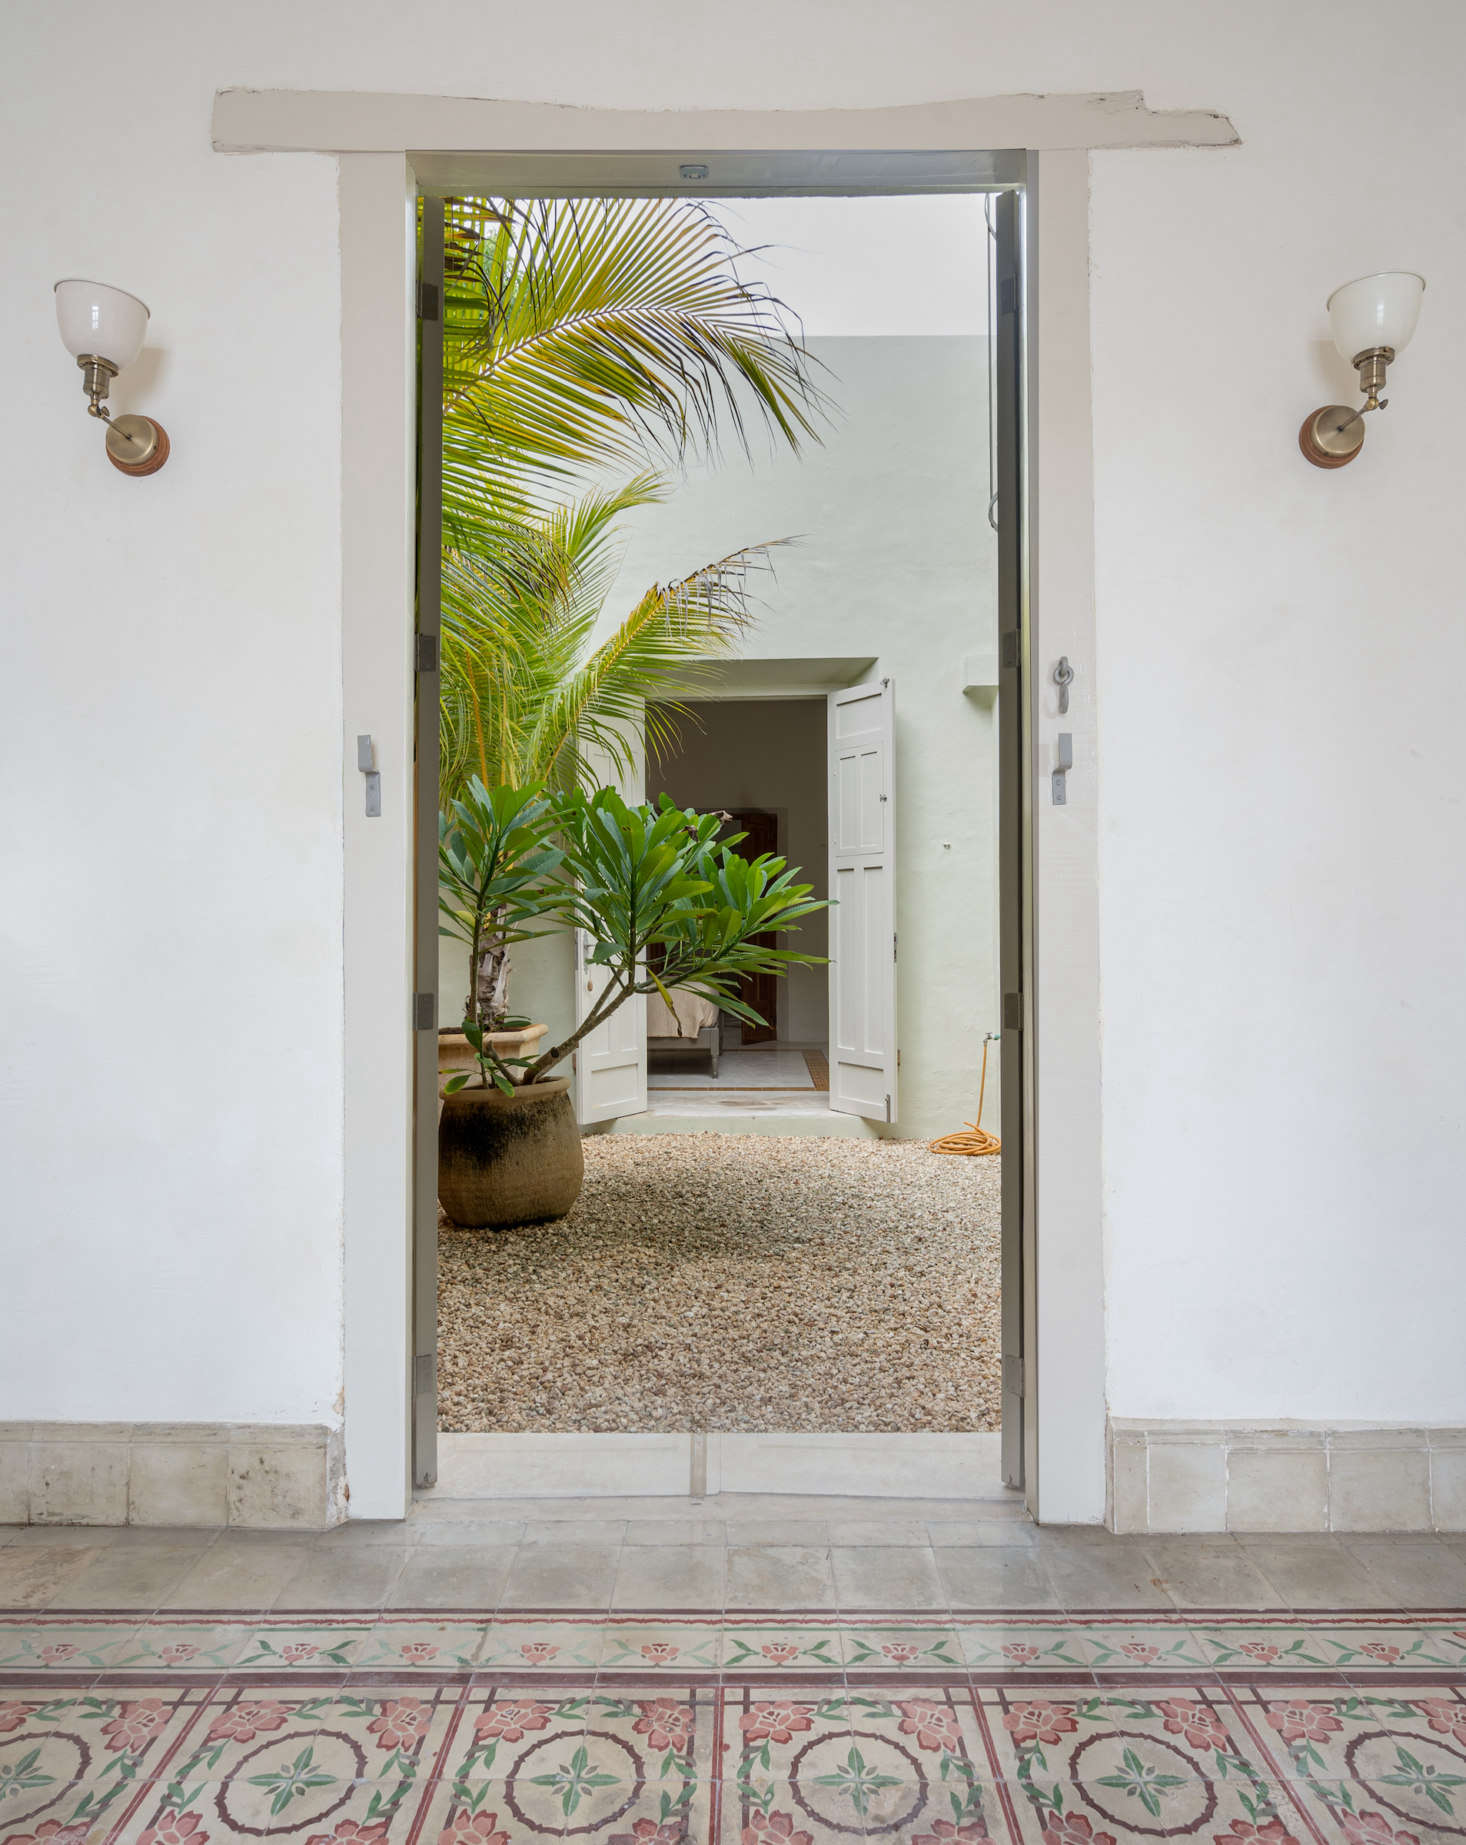 Several rooms, including the study, living room, and guest room, have access to a small courtyard, a traditional feature in many of the colonial homes in Mérida.